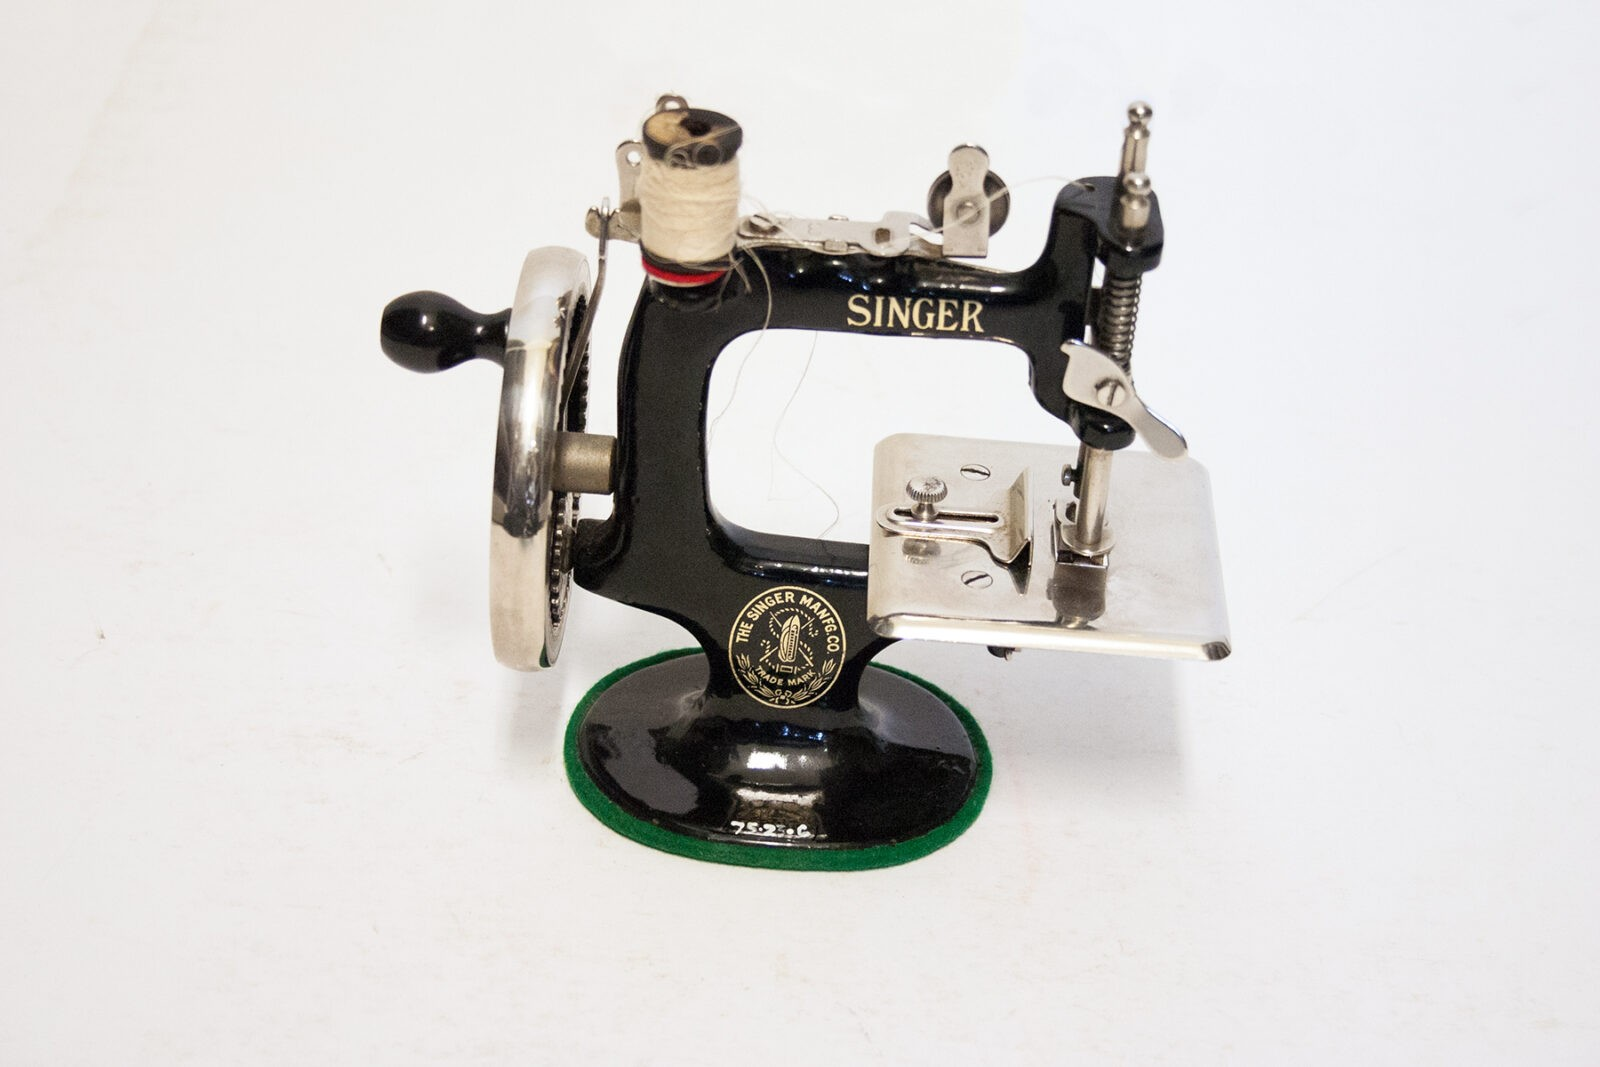 A black and nickel sewing machine, photographed on a white background.